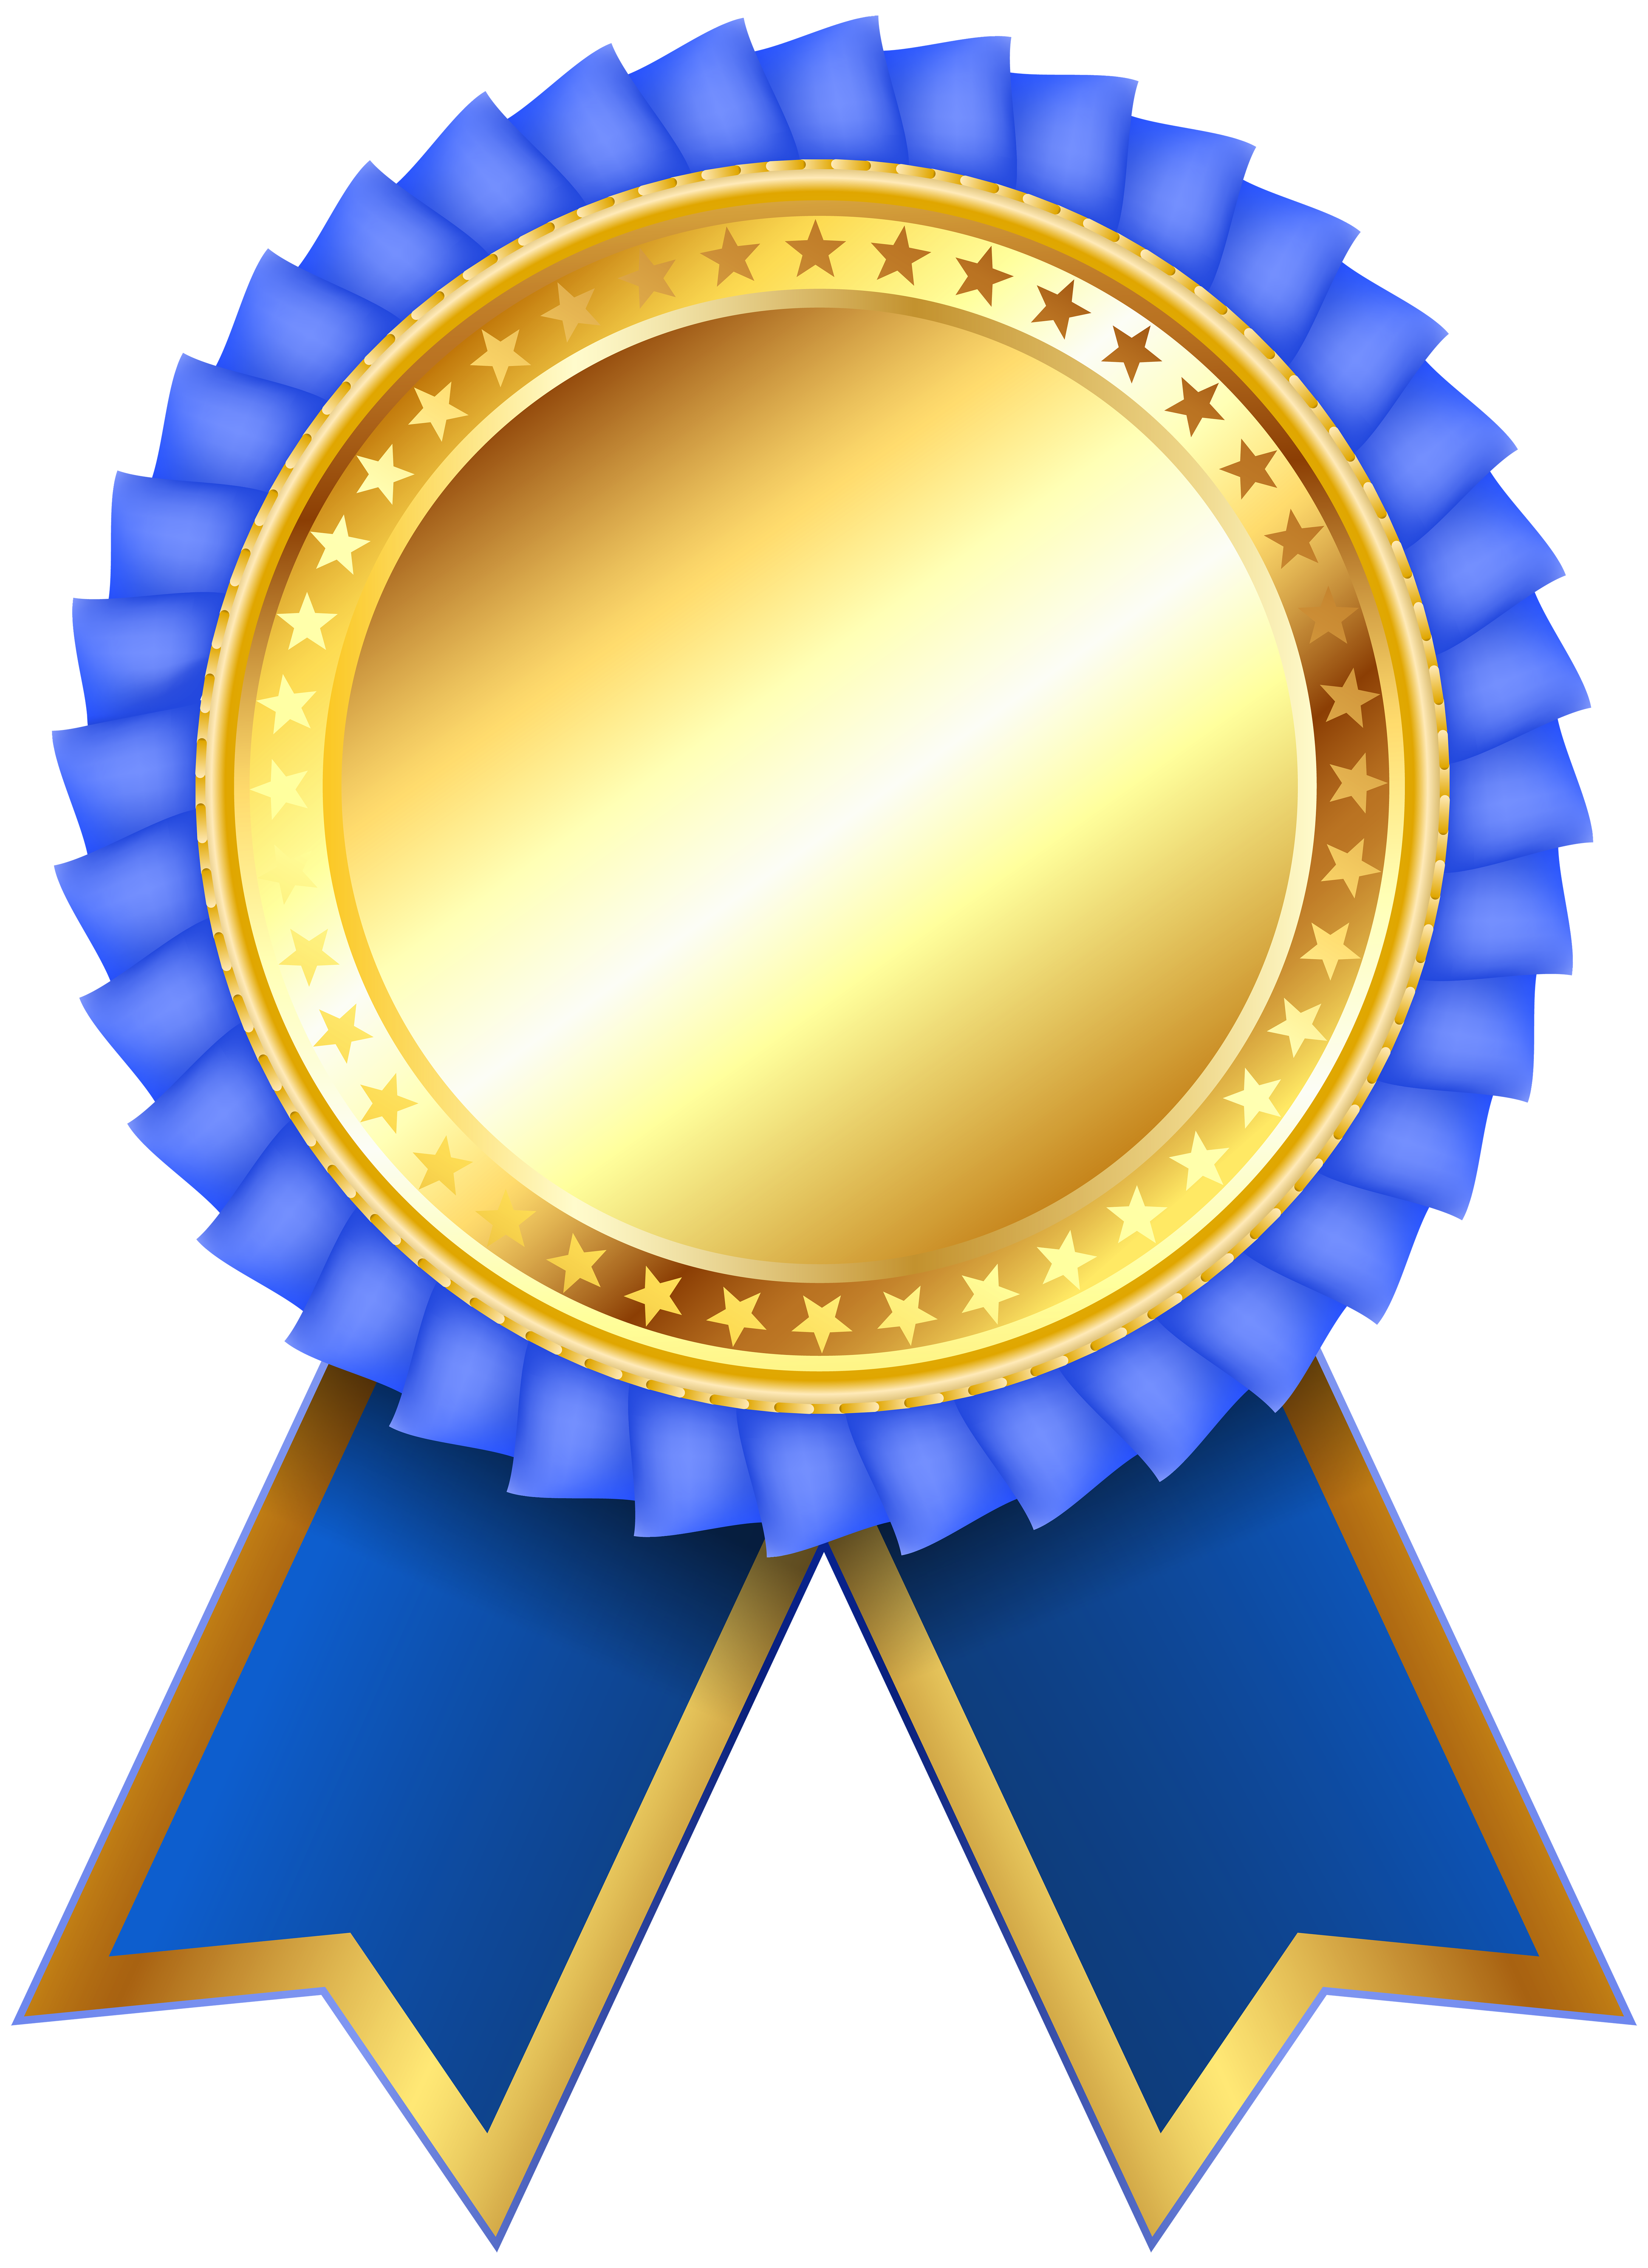 Award clipart. File transparentpng